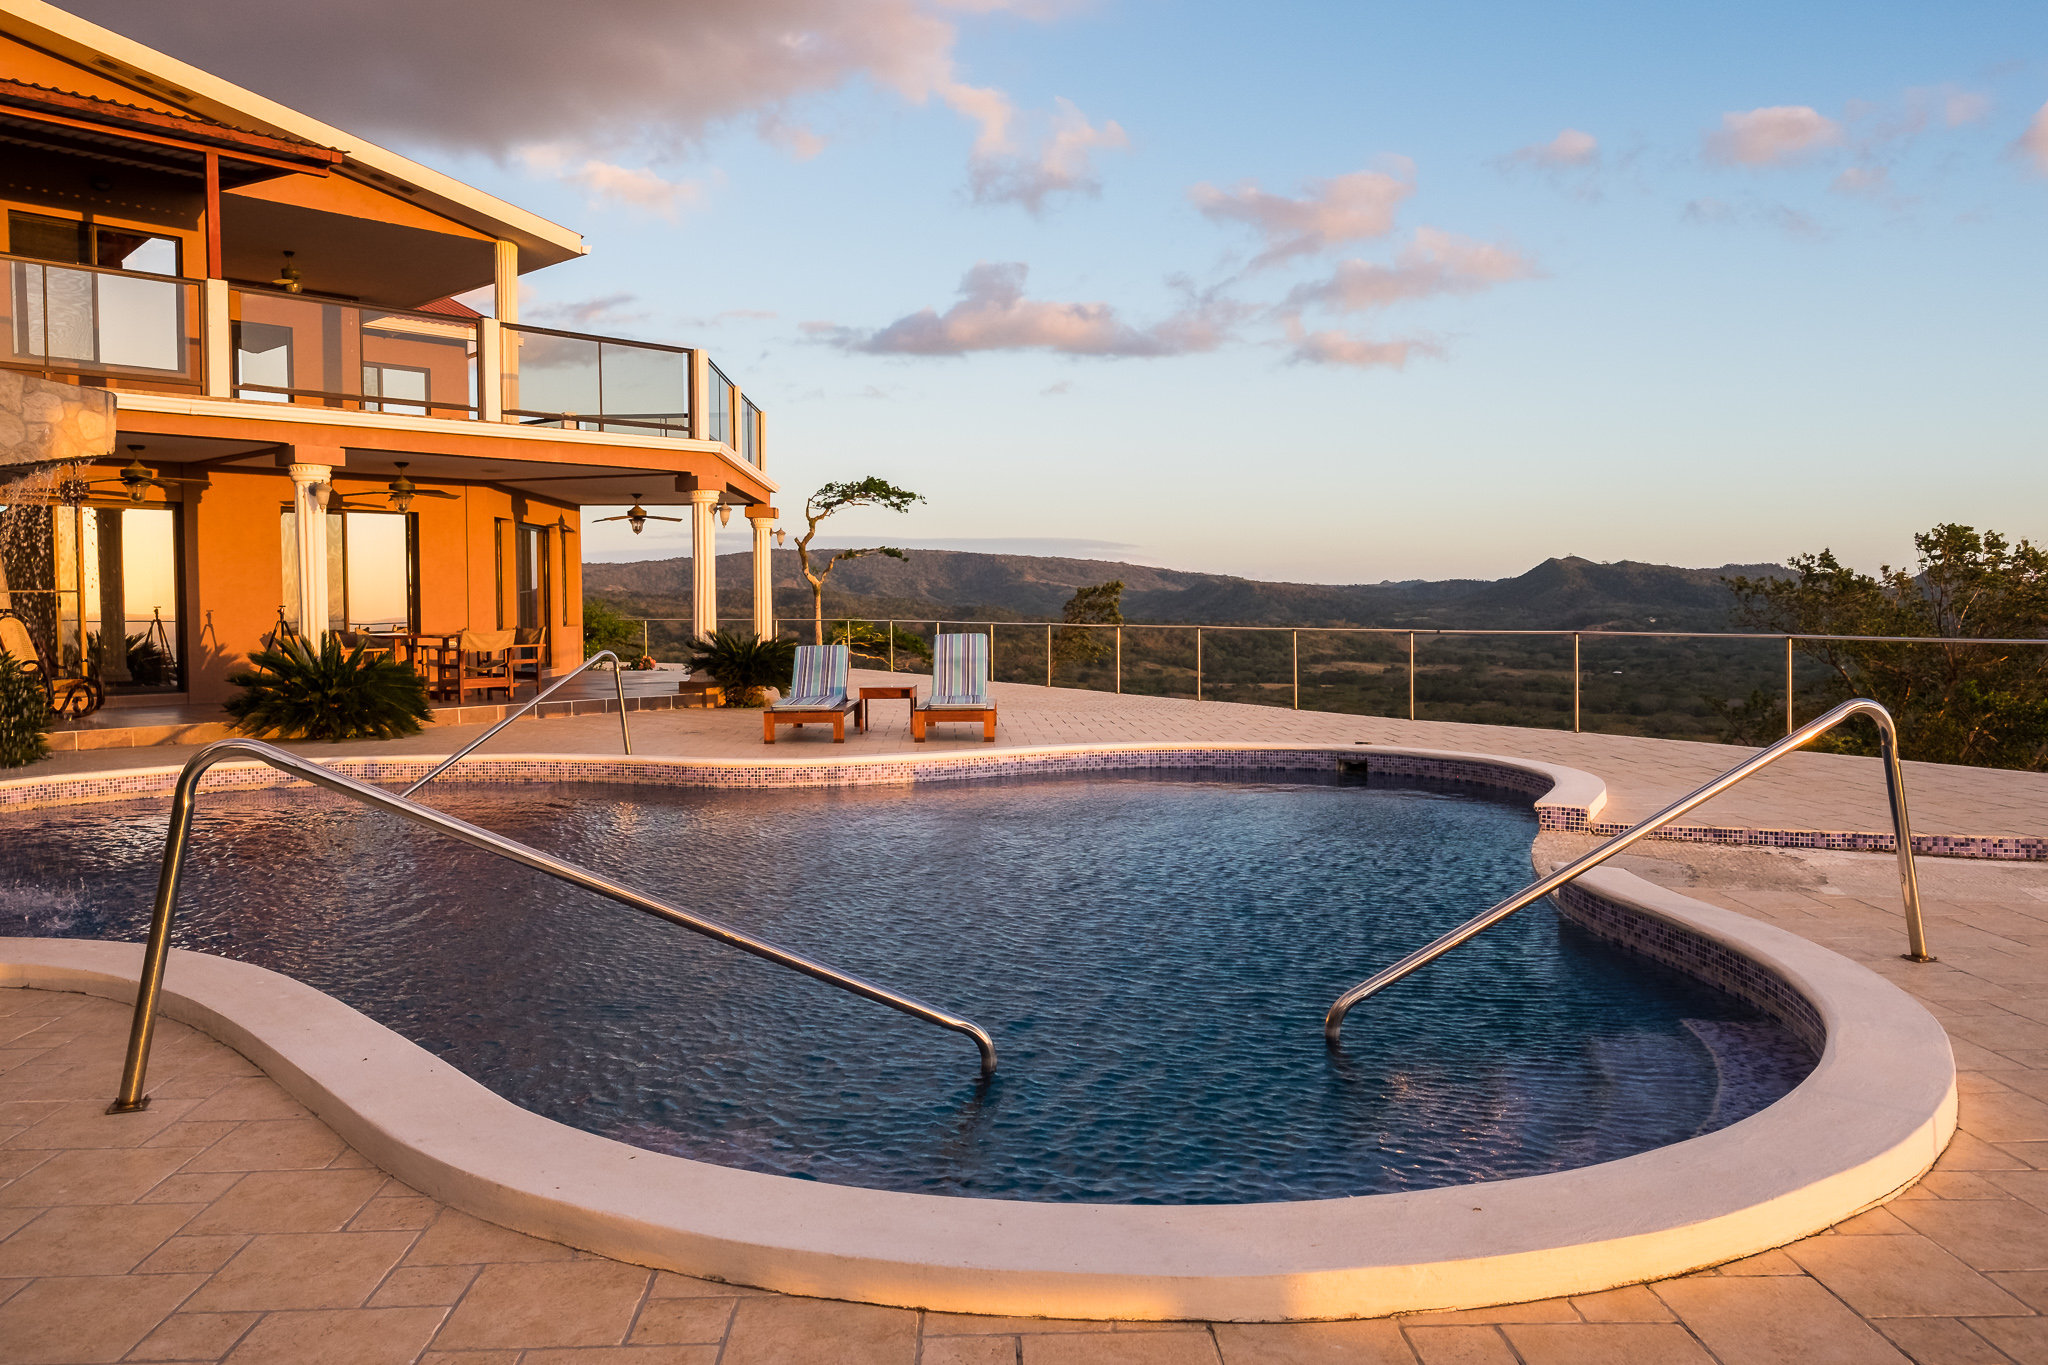 Premium home with breathtaking views